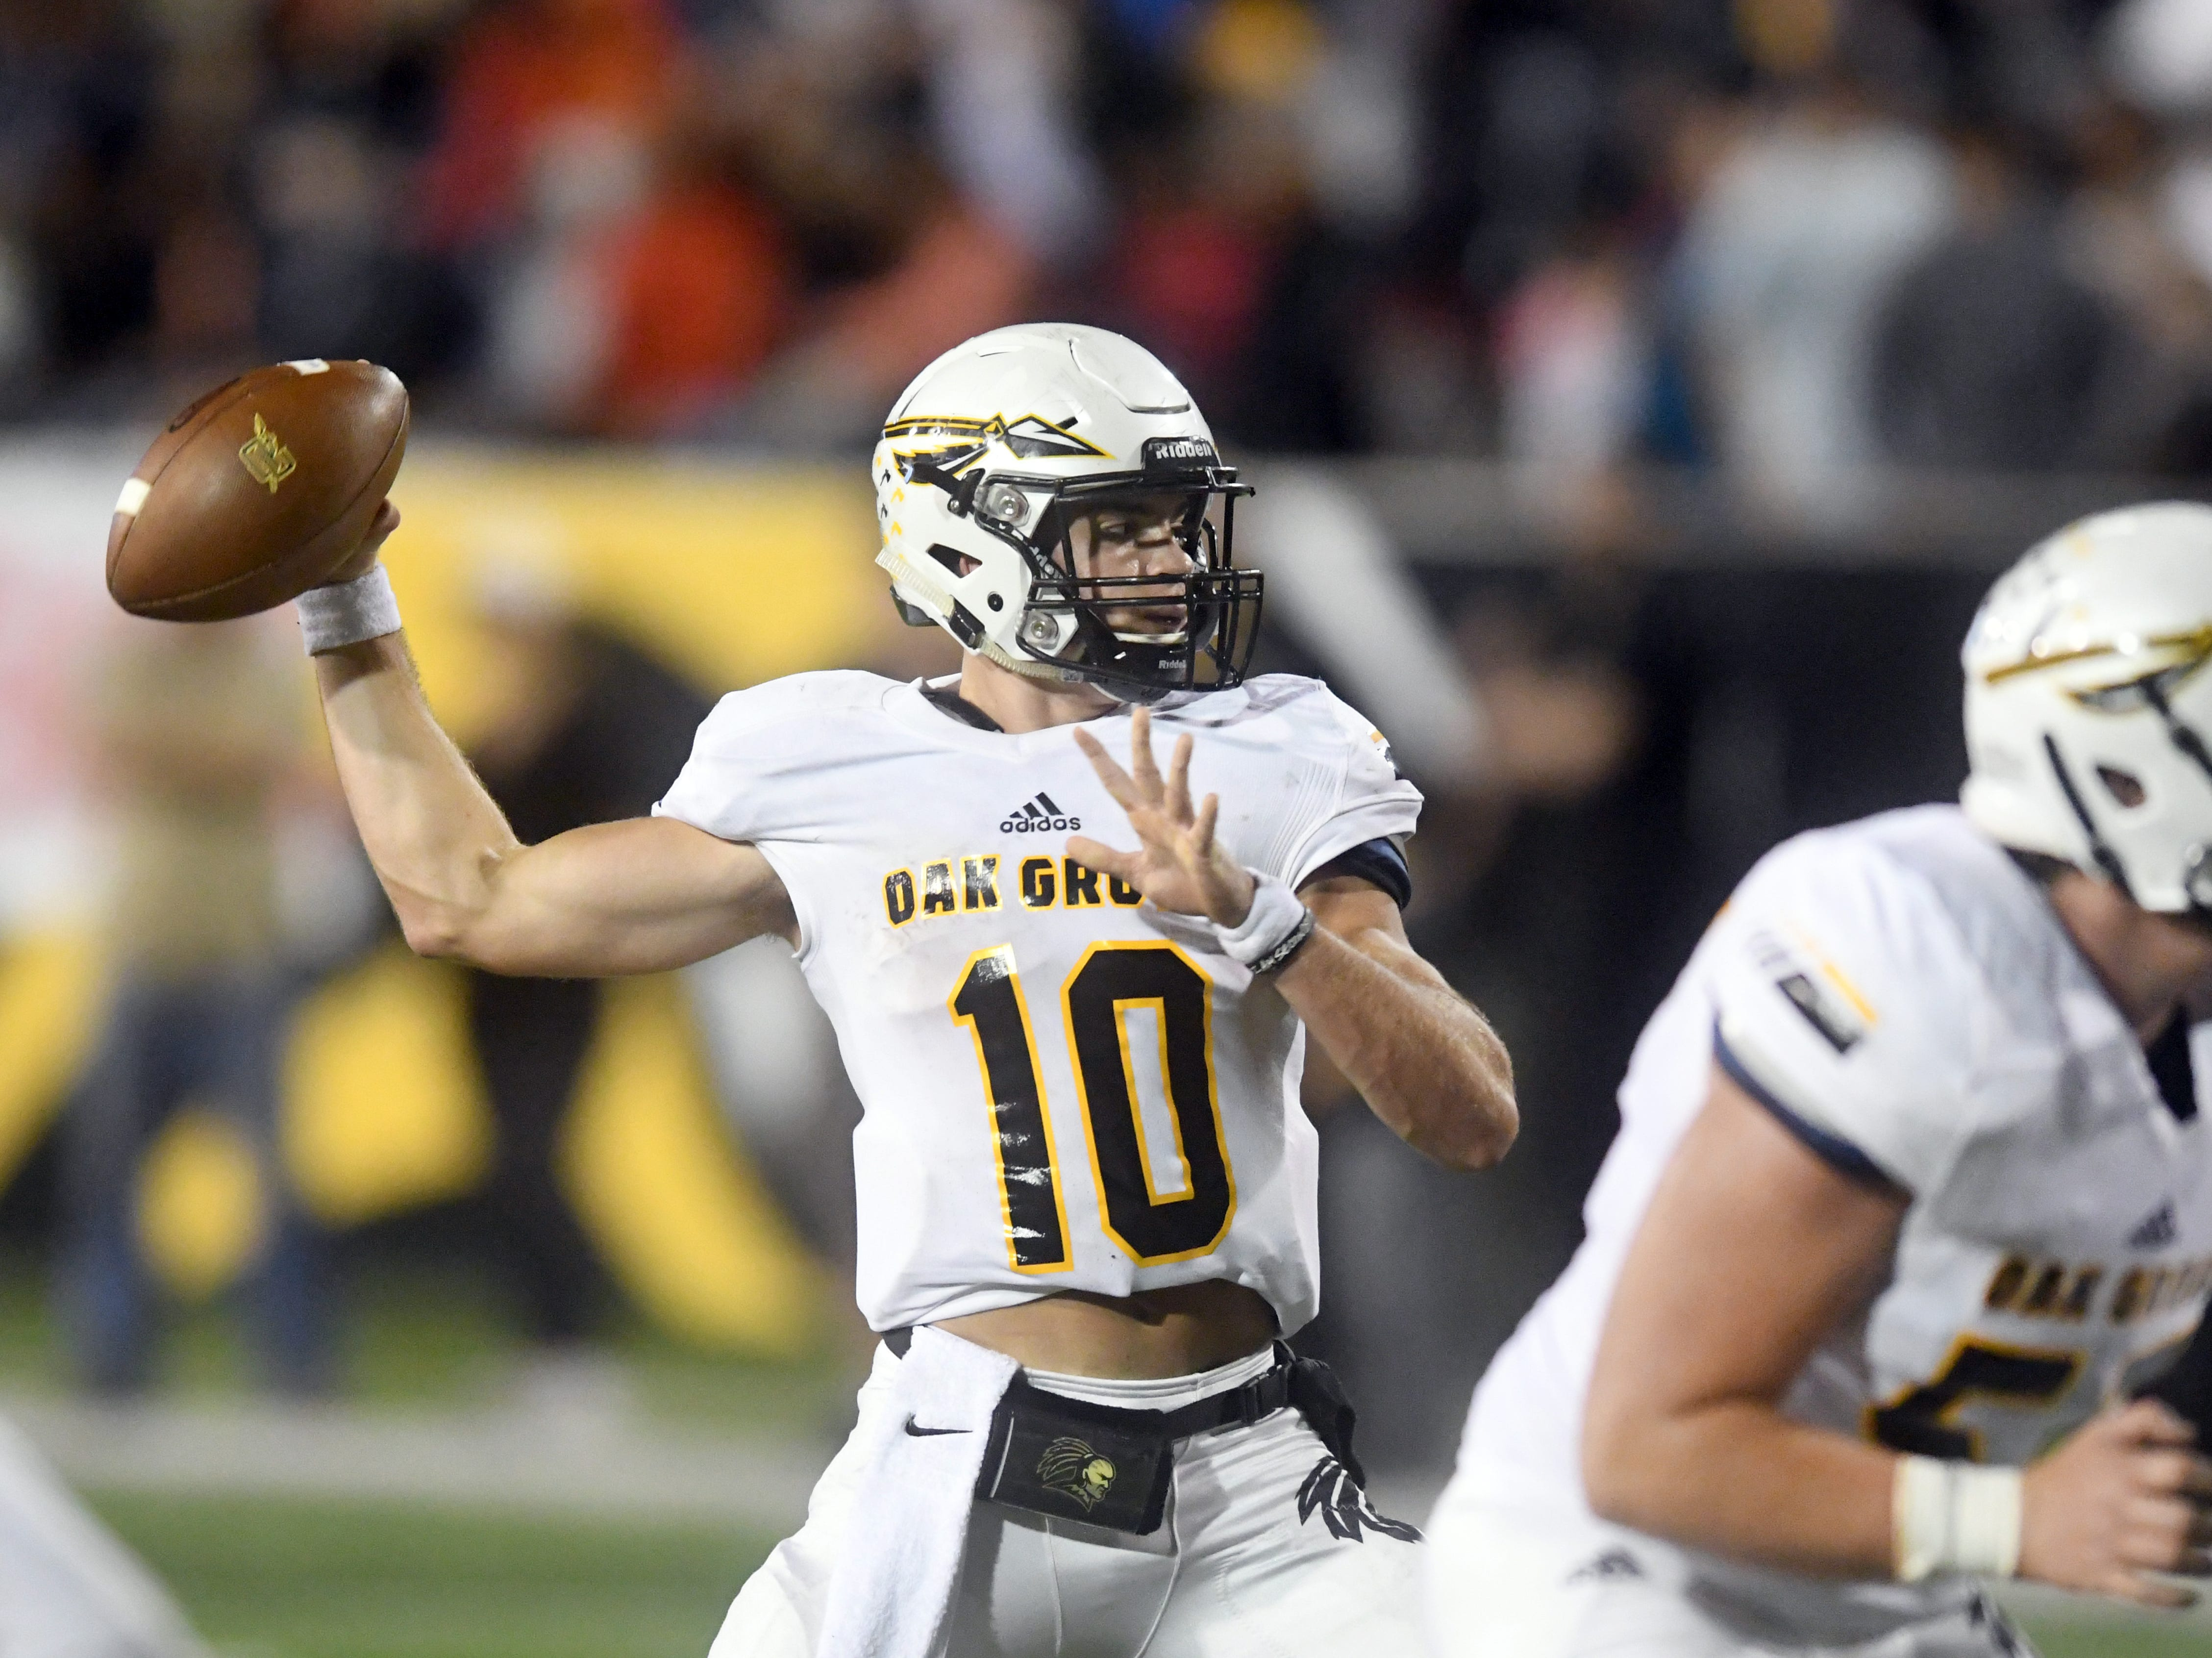 Oak Grove quarterback John Rhys Plumlee throws the ball in the 6A state championship game against Horn Lake at M.M. Roberts Stadium in Hattiesburg on Friday, November 30, 2018.